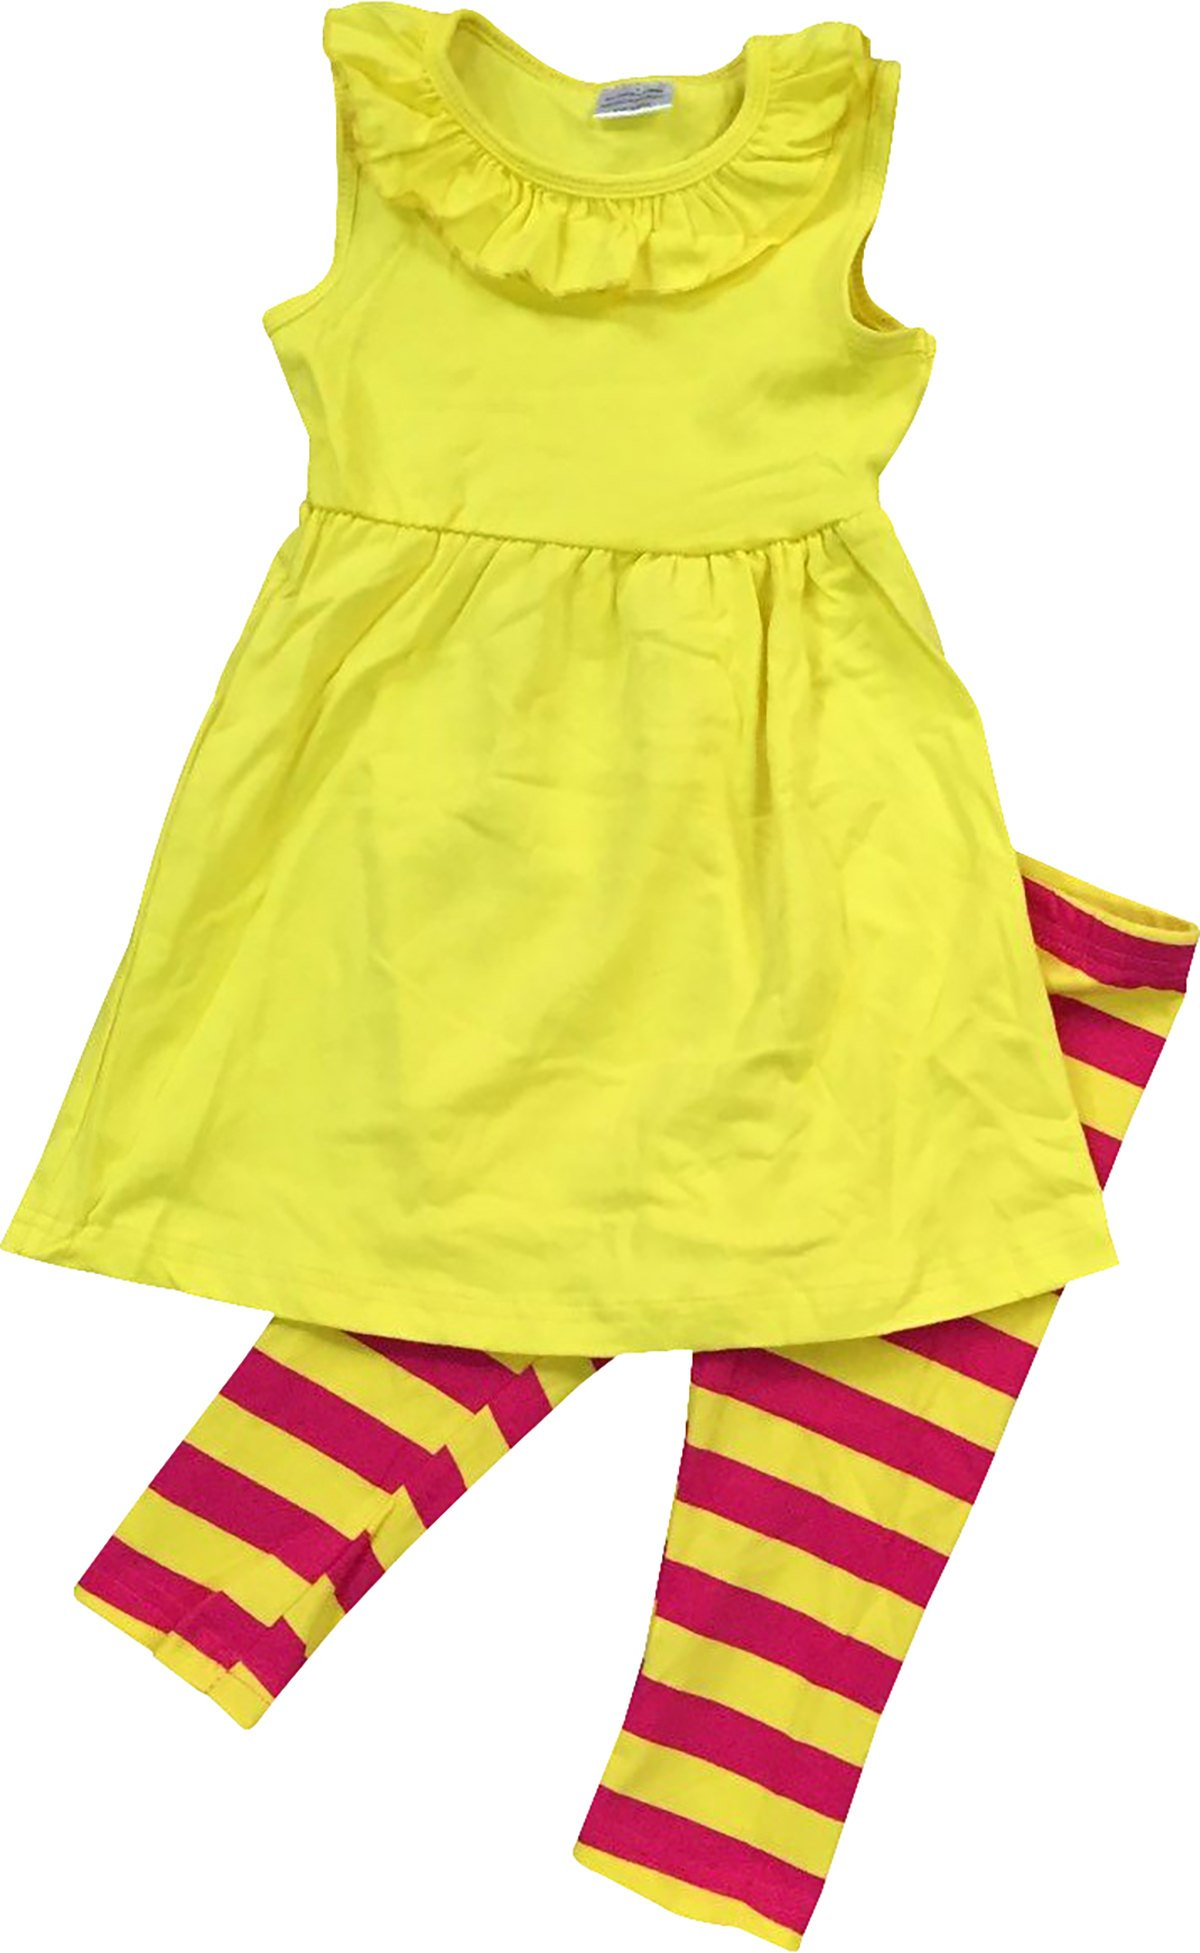 Little Girl Kids Ruffle Tunic Dress Summer Stripe Pant Set Yellow 6 XL 500681